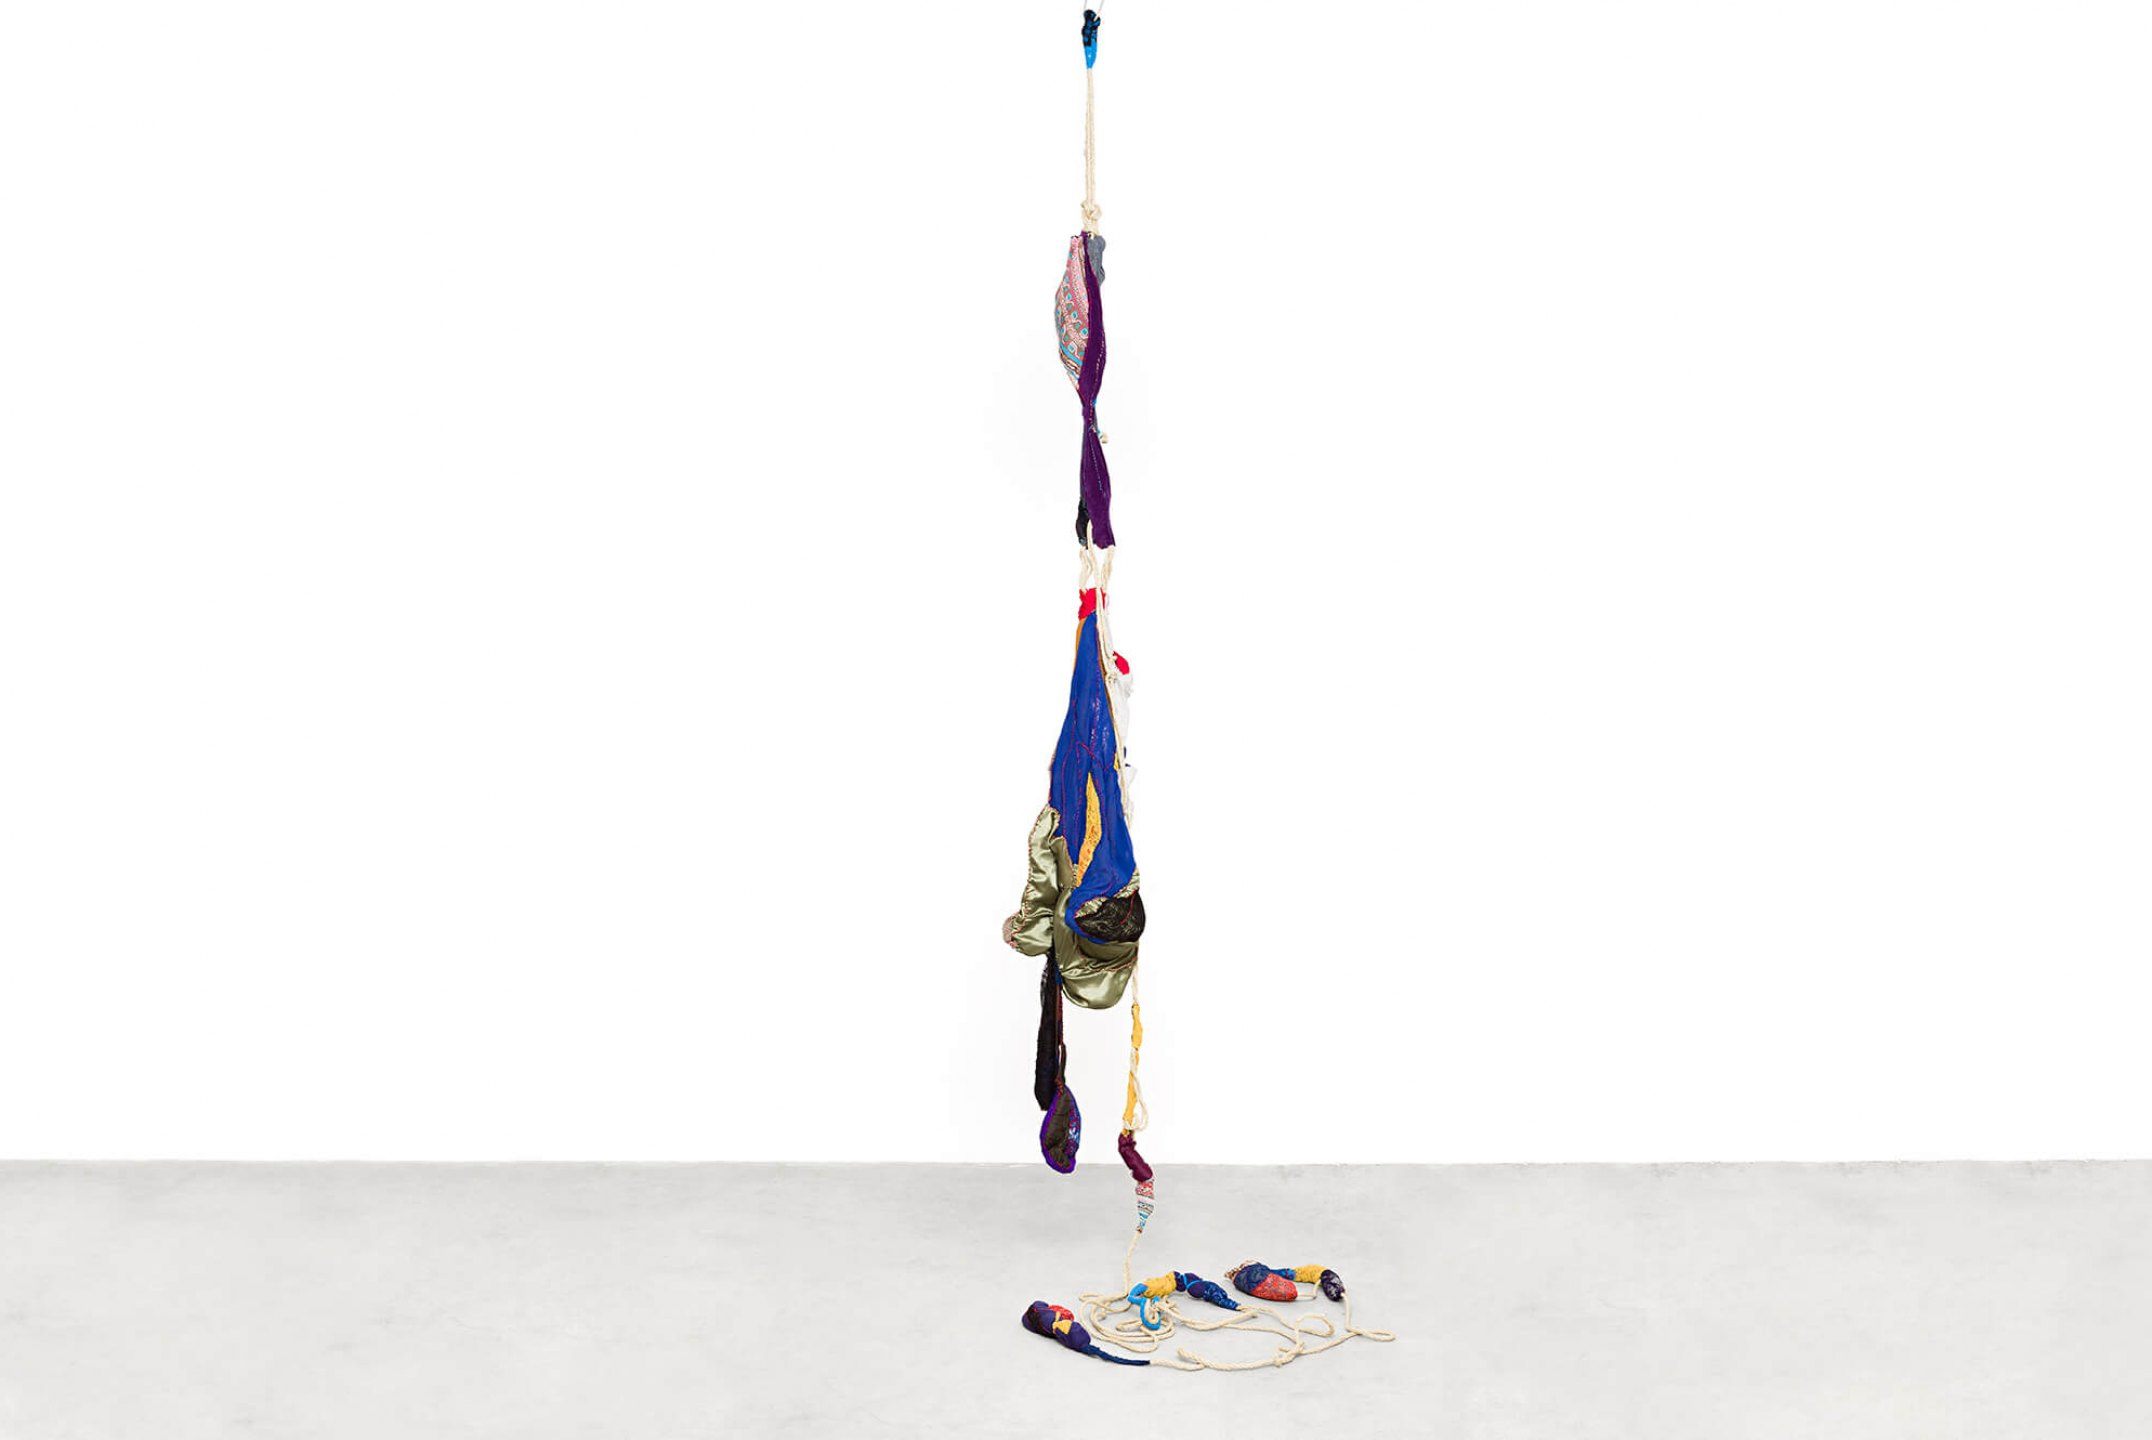 Sonia Gomes,<em>Pendente 1</em>, 2016, stitching, bindings, different fabrics and laces on wire and rope, 600×80 cm - Mendes Wood DM